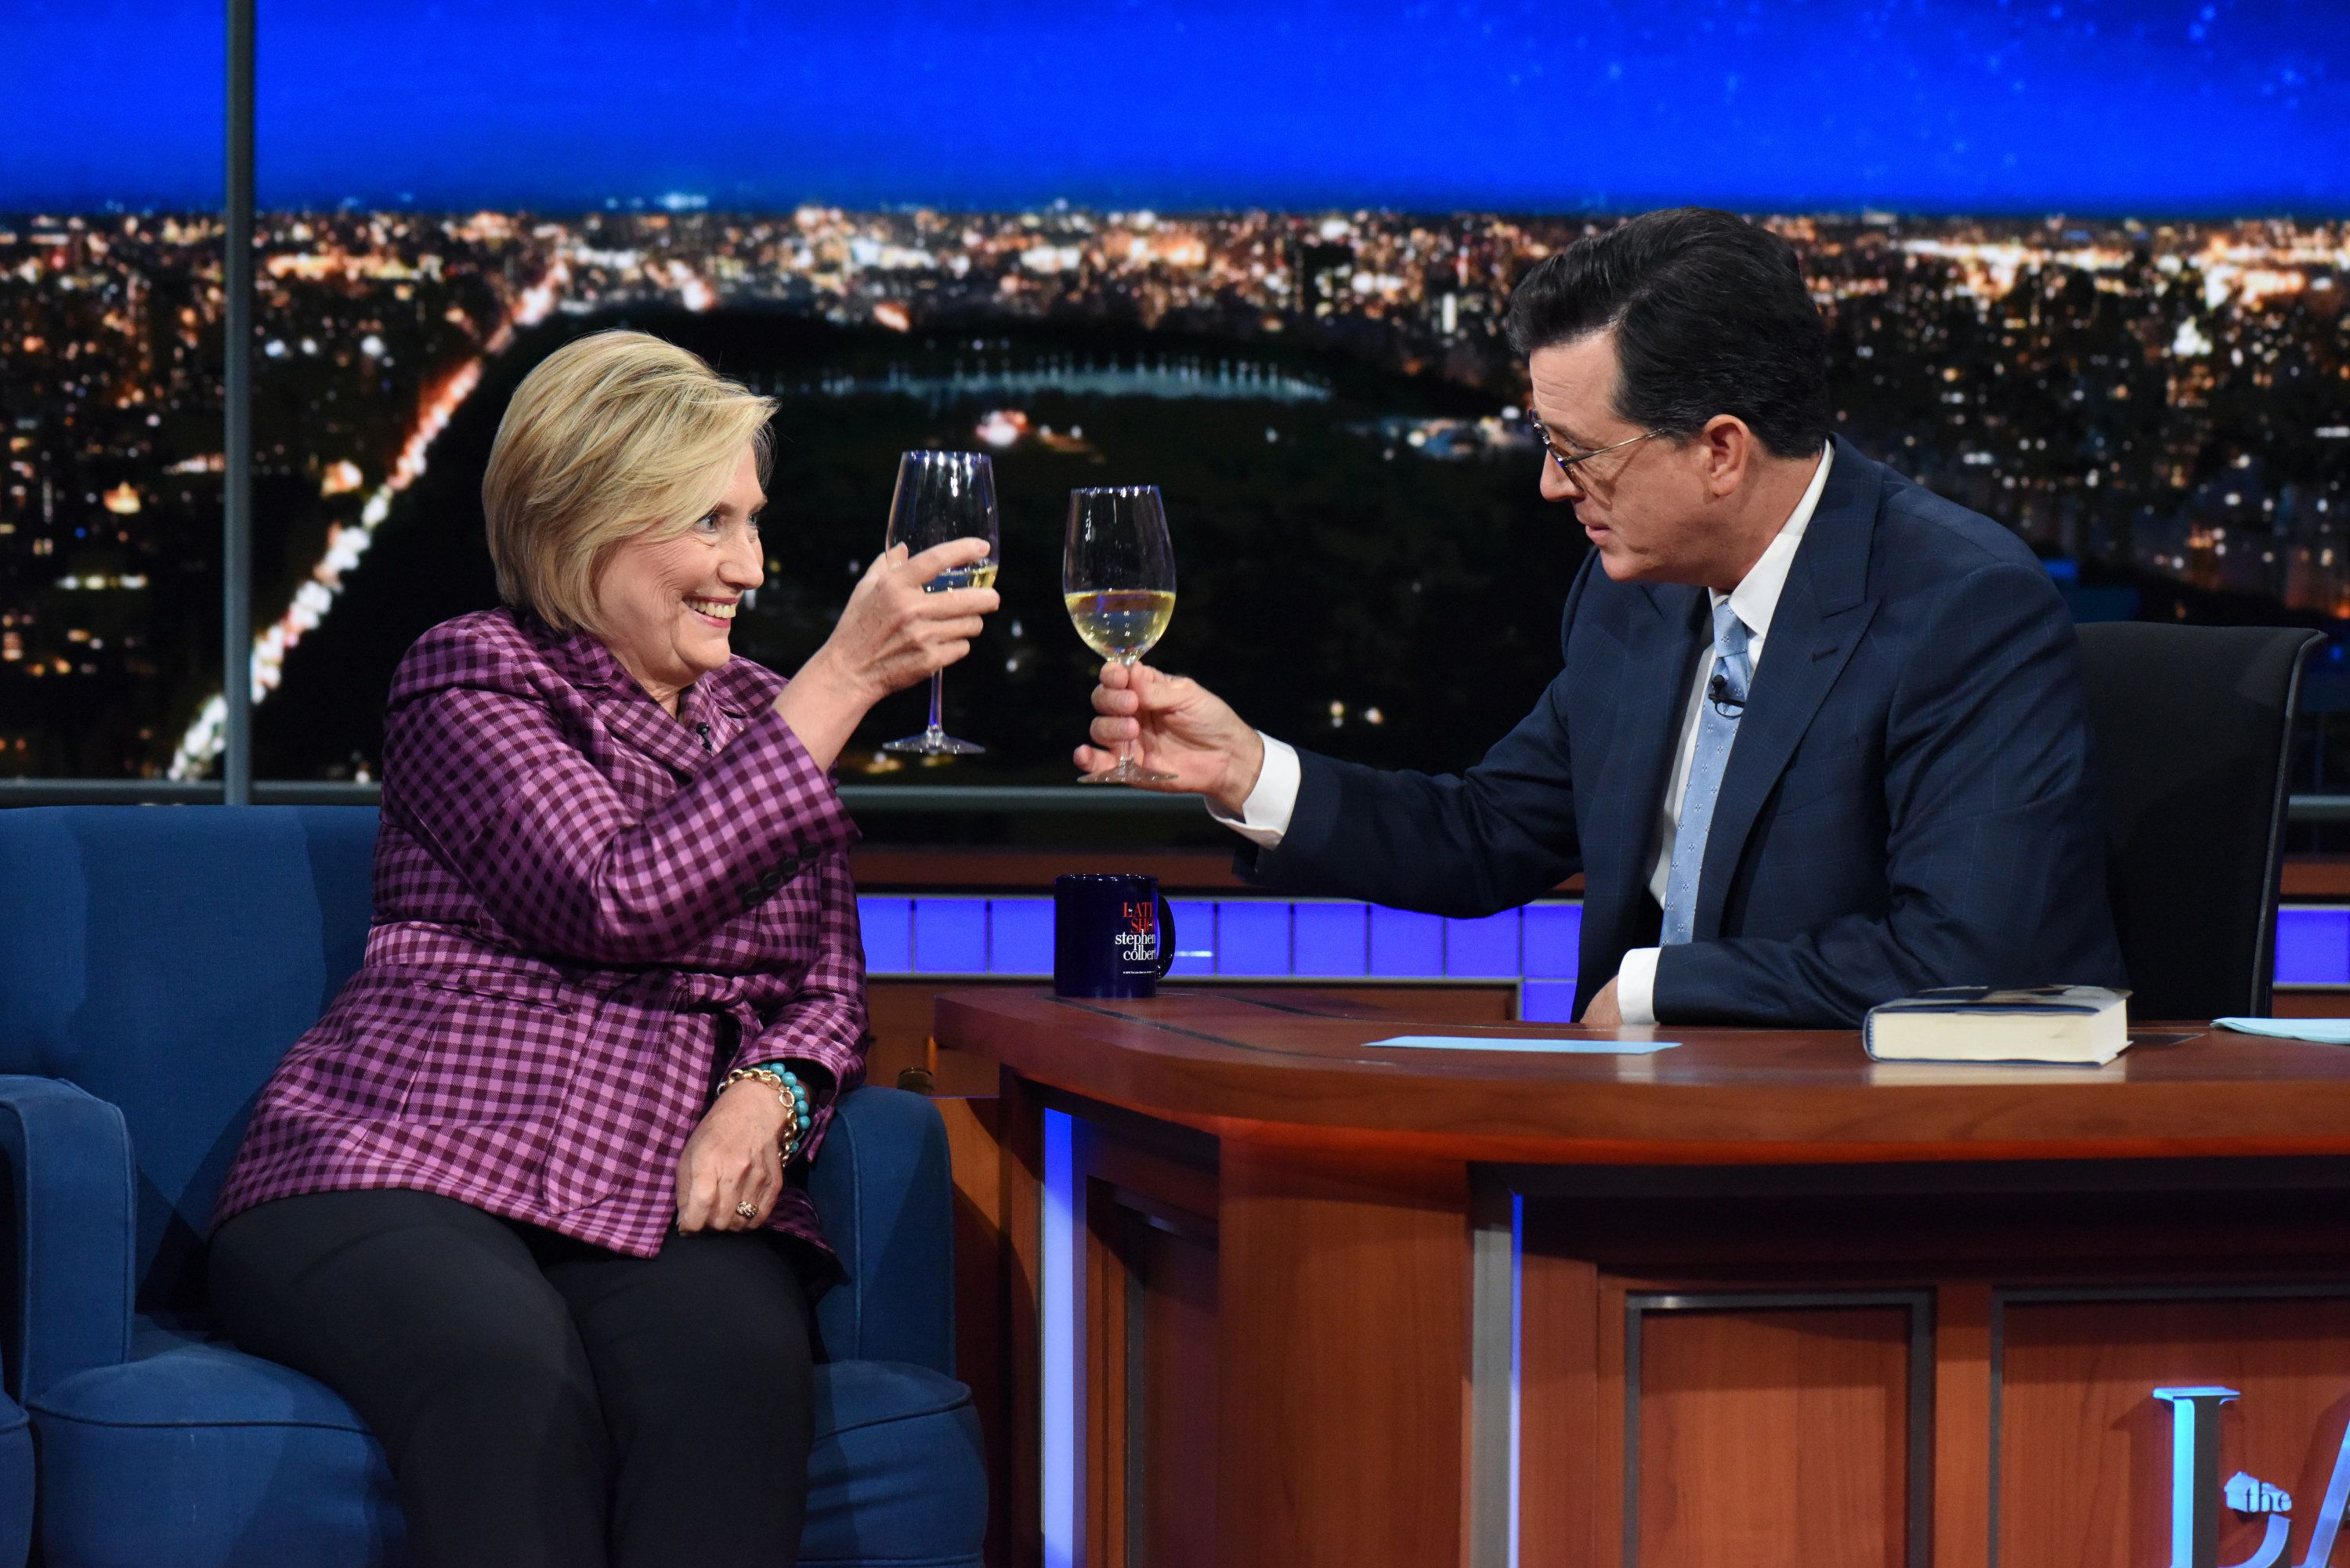 NEW YORK - SEPTEMBER 19: The Late Show with Stephen Colbert and guest Hillary Clinton during Tuesday's September 19, 2017 show. (Photo by Scott Kowalchyk/CBS via Getty Images)